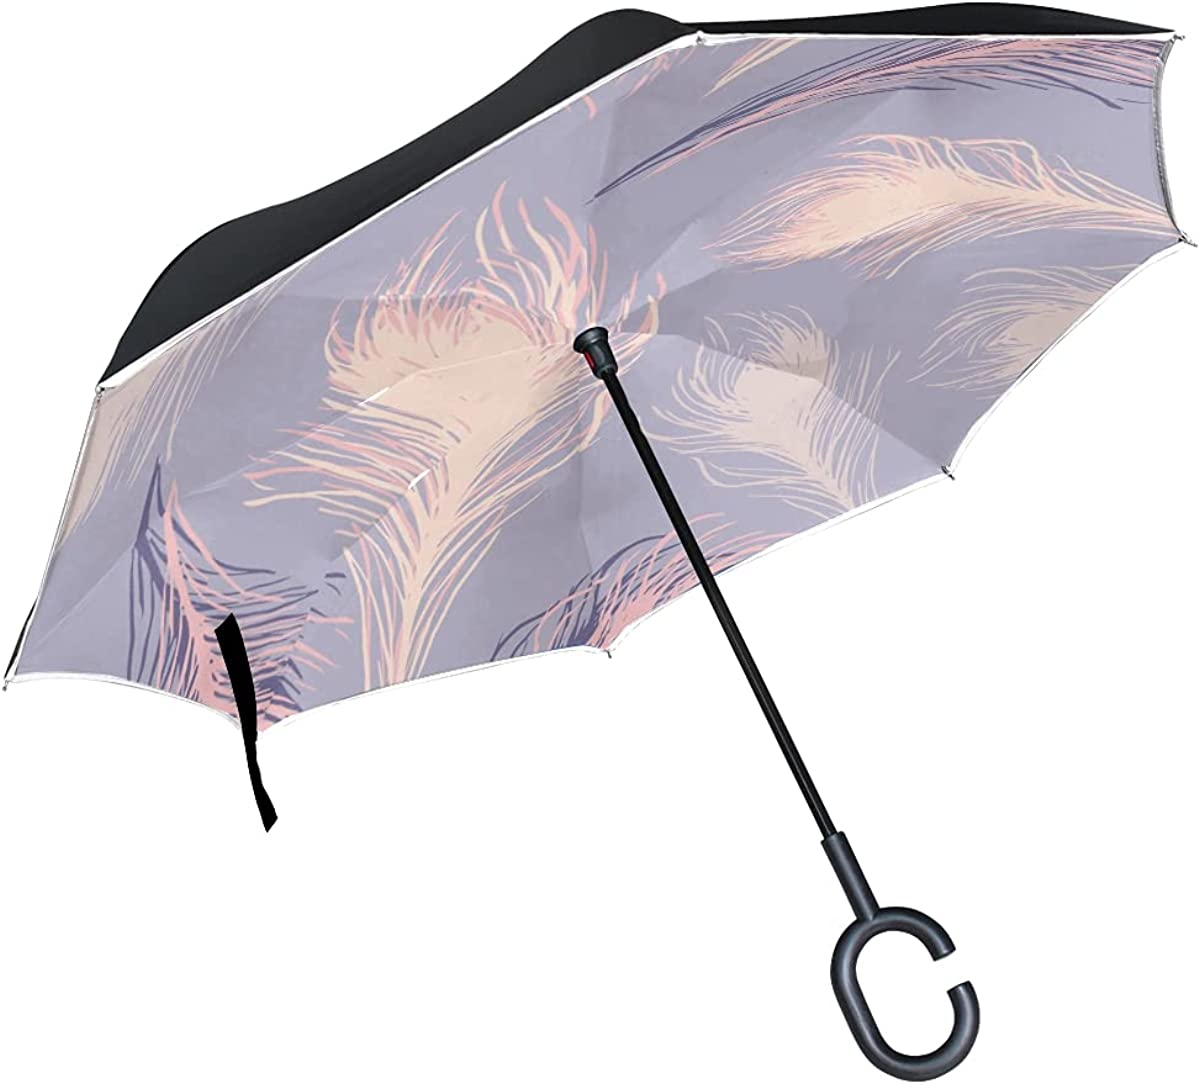 Inverted Umbrella Repeat Soft Windproof revers New product! New type Department store Feathers